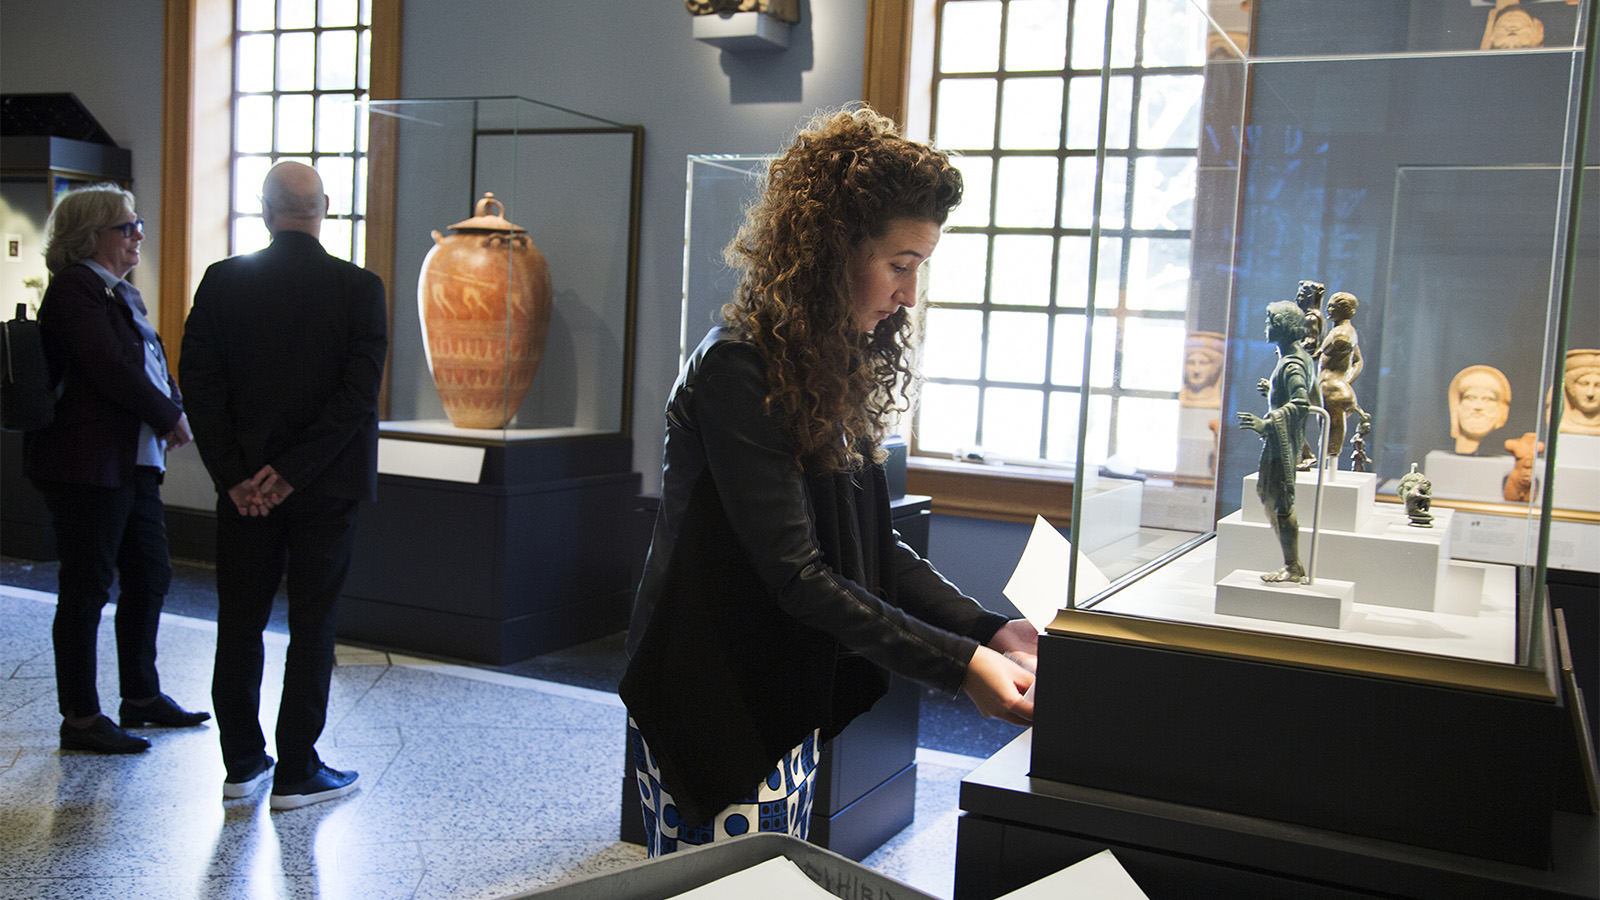 A young woman with long curly hair and wearing a leather jacket places a white label on the pedestal of a case above which are about five small bronze statuettes.